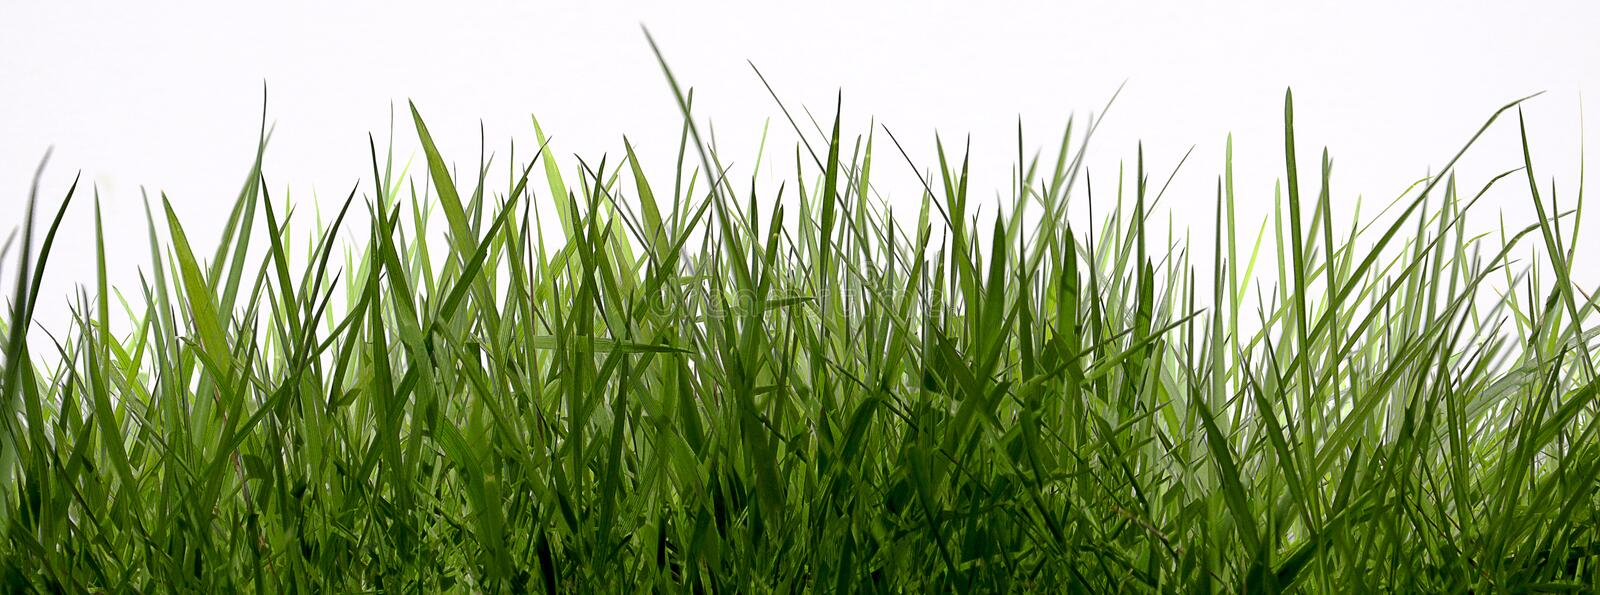 Download Grass stock image. Image of tall, wild, white, meadows - 39006295